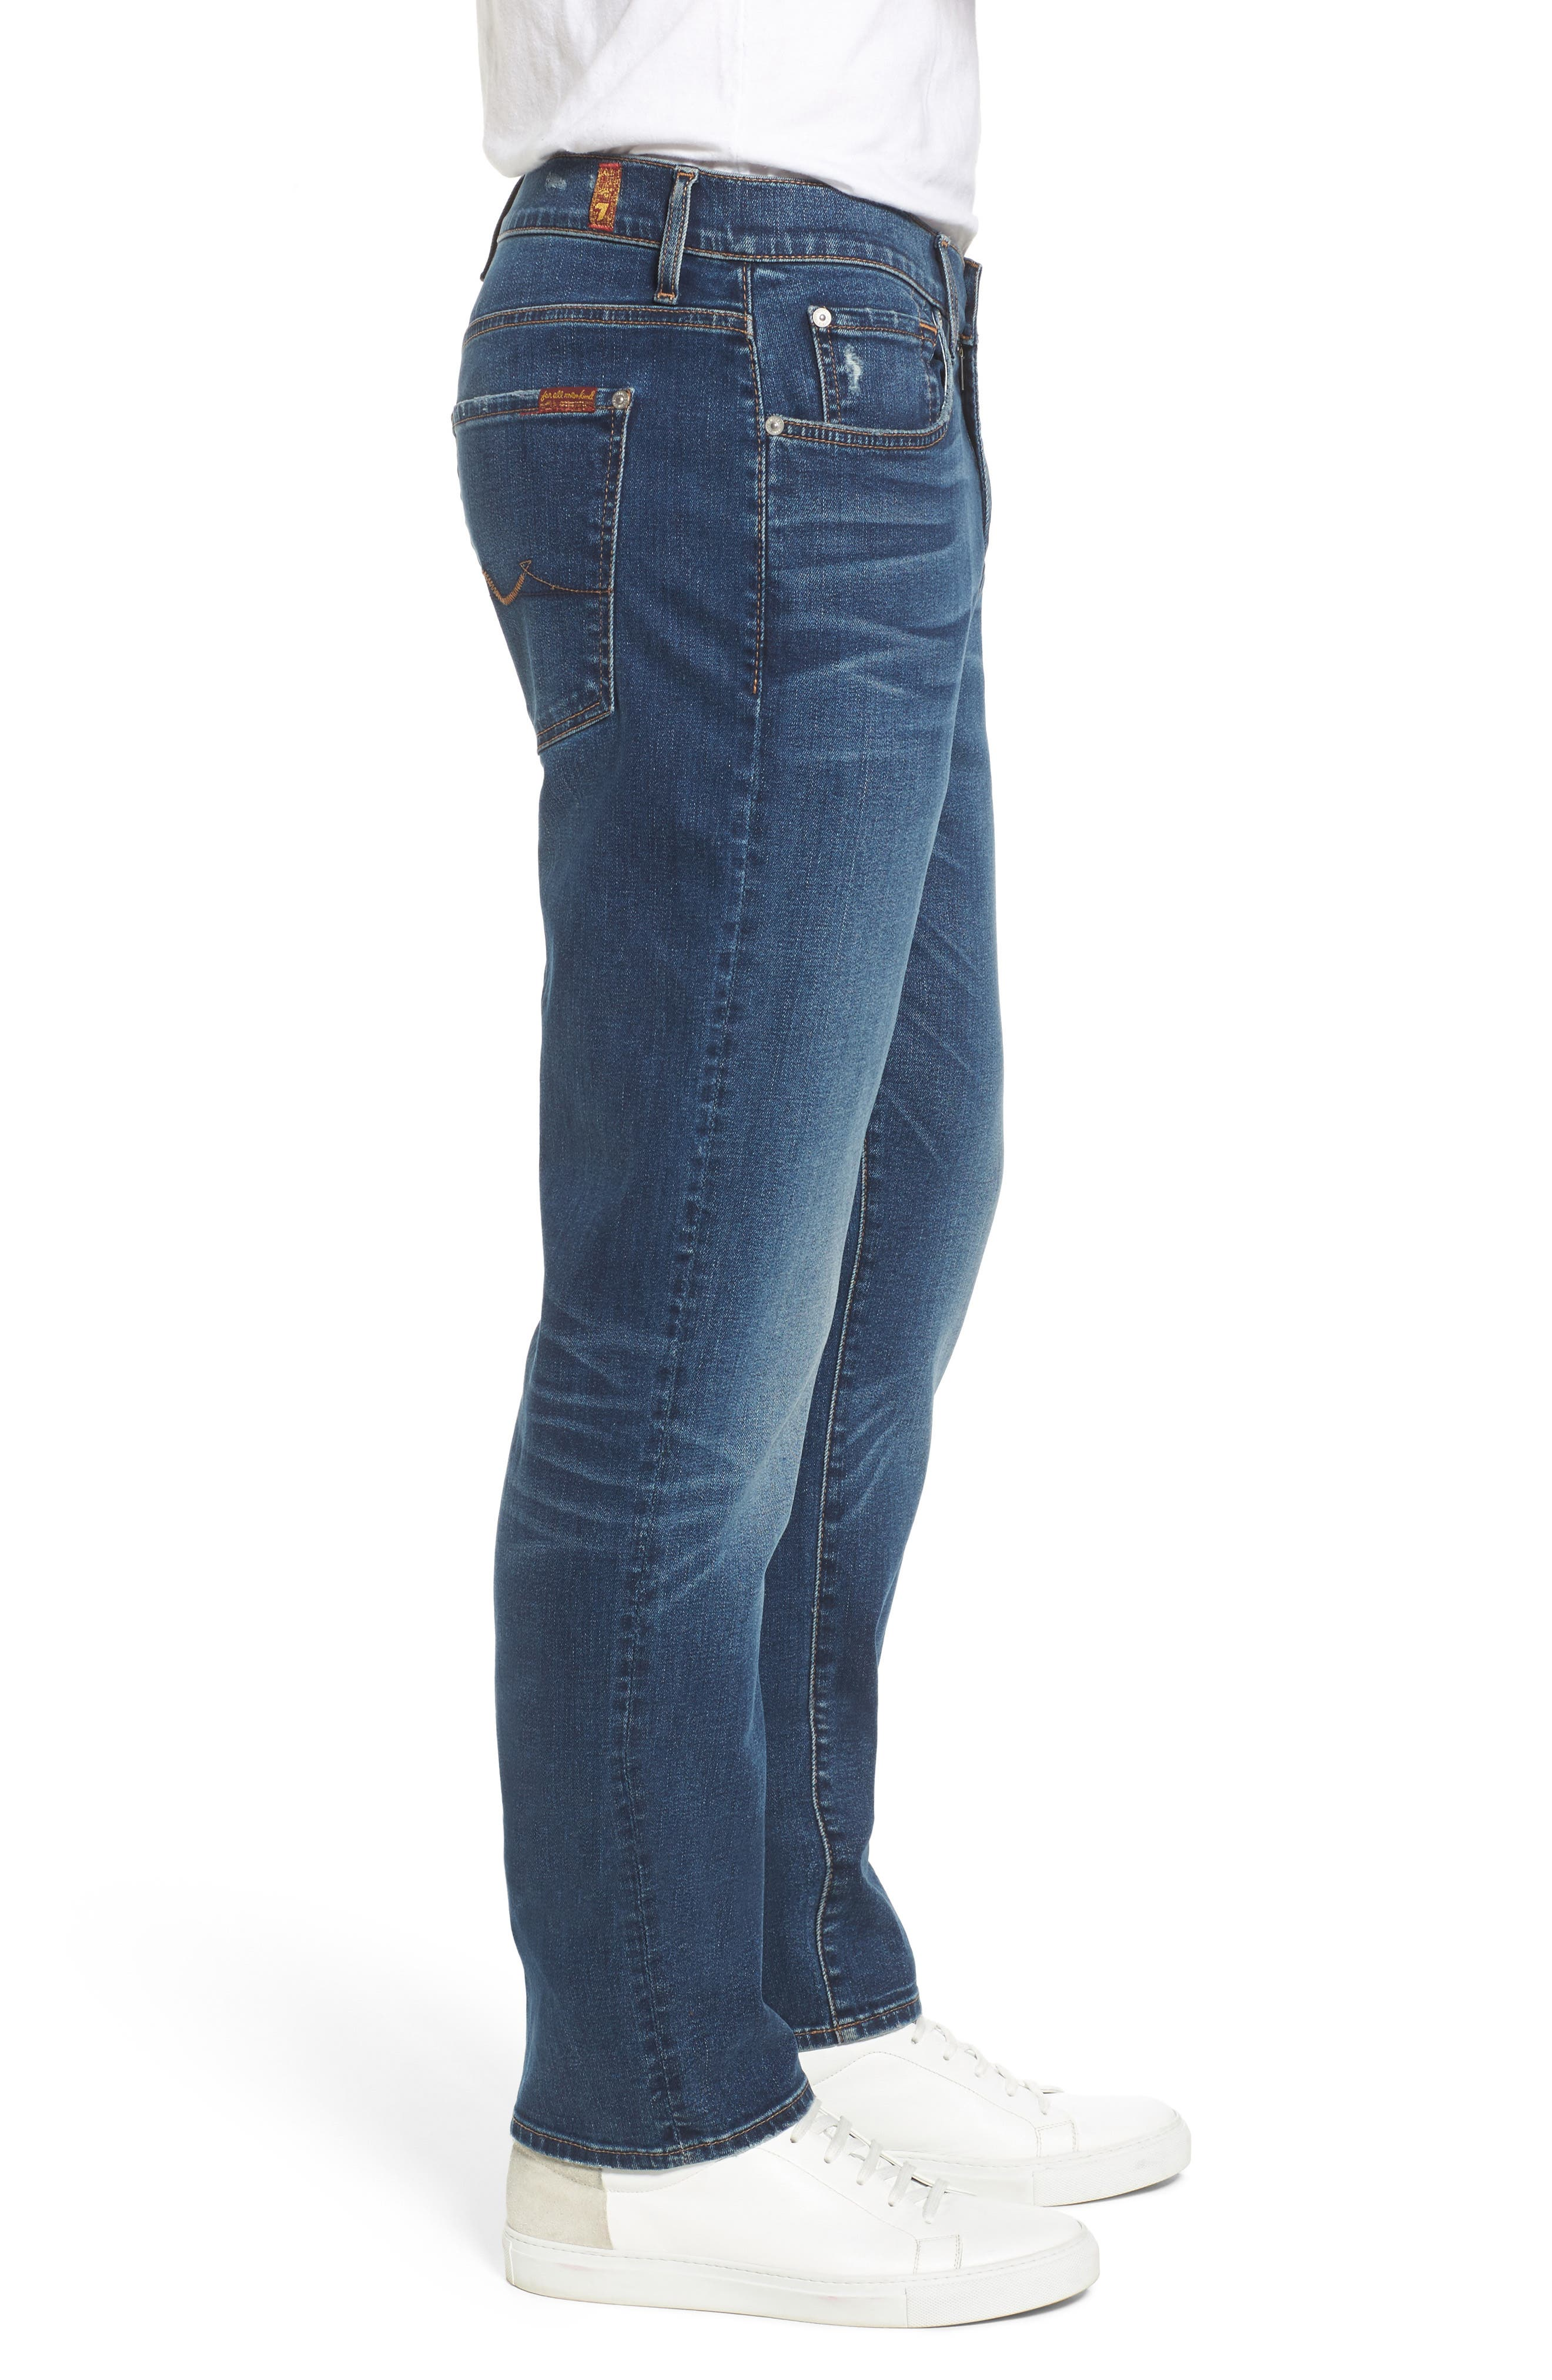 The Straight - Luxe Performance Slim Straight Leg Jeans,                             Alternate thumbnail 3, color,                             LUXE PERFORMANCE UNION